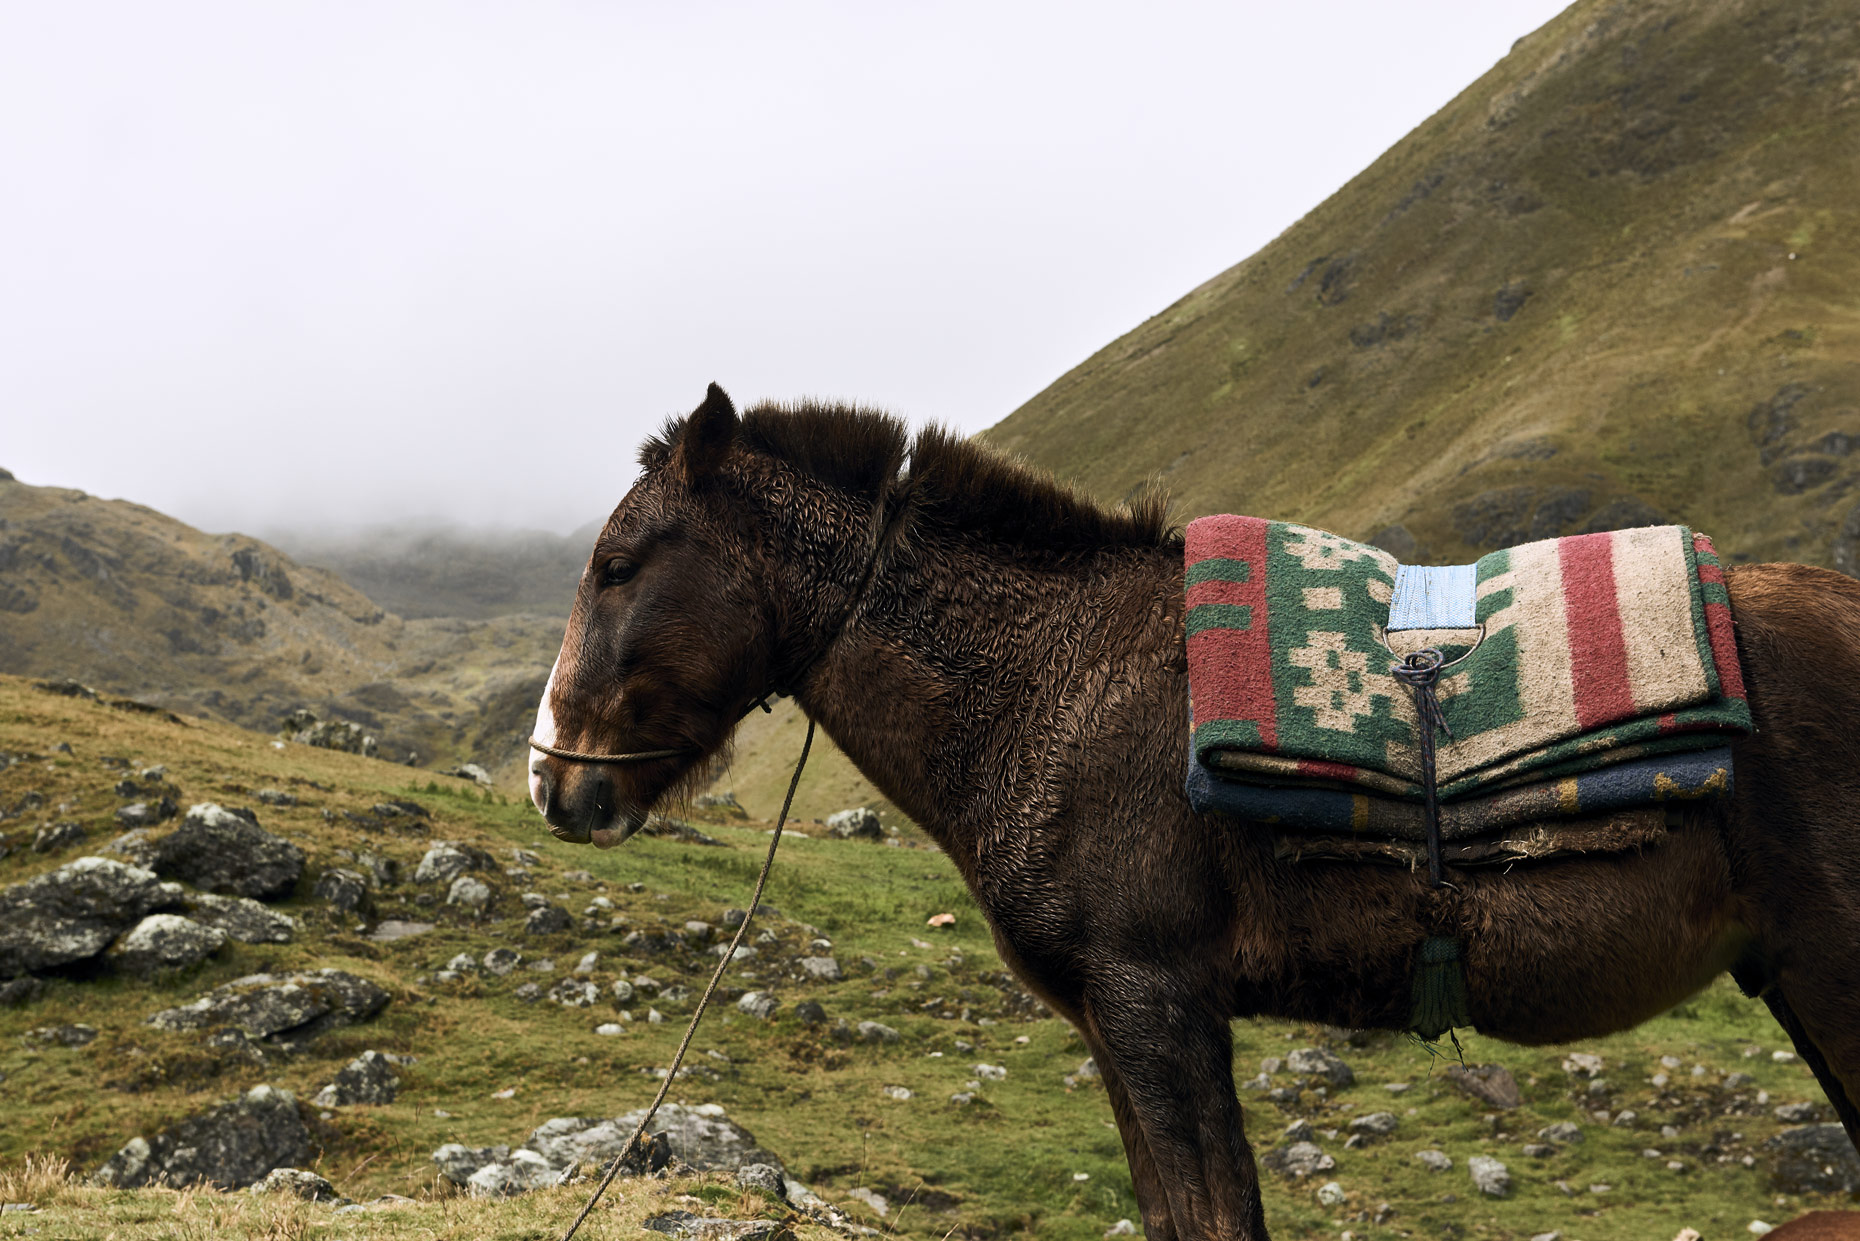 Horse-awaits-Andean-mountain-climb-in-the-Nation-of-Peru